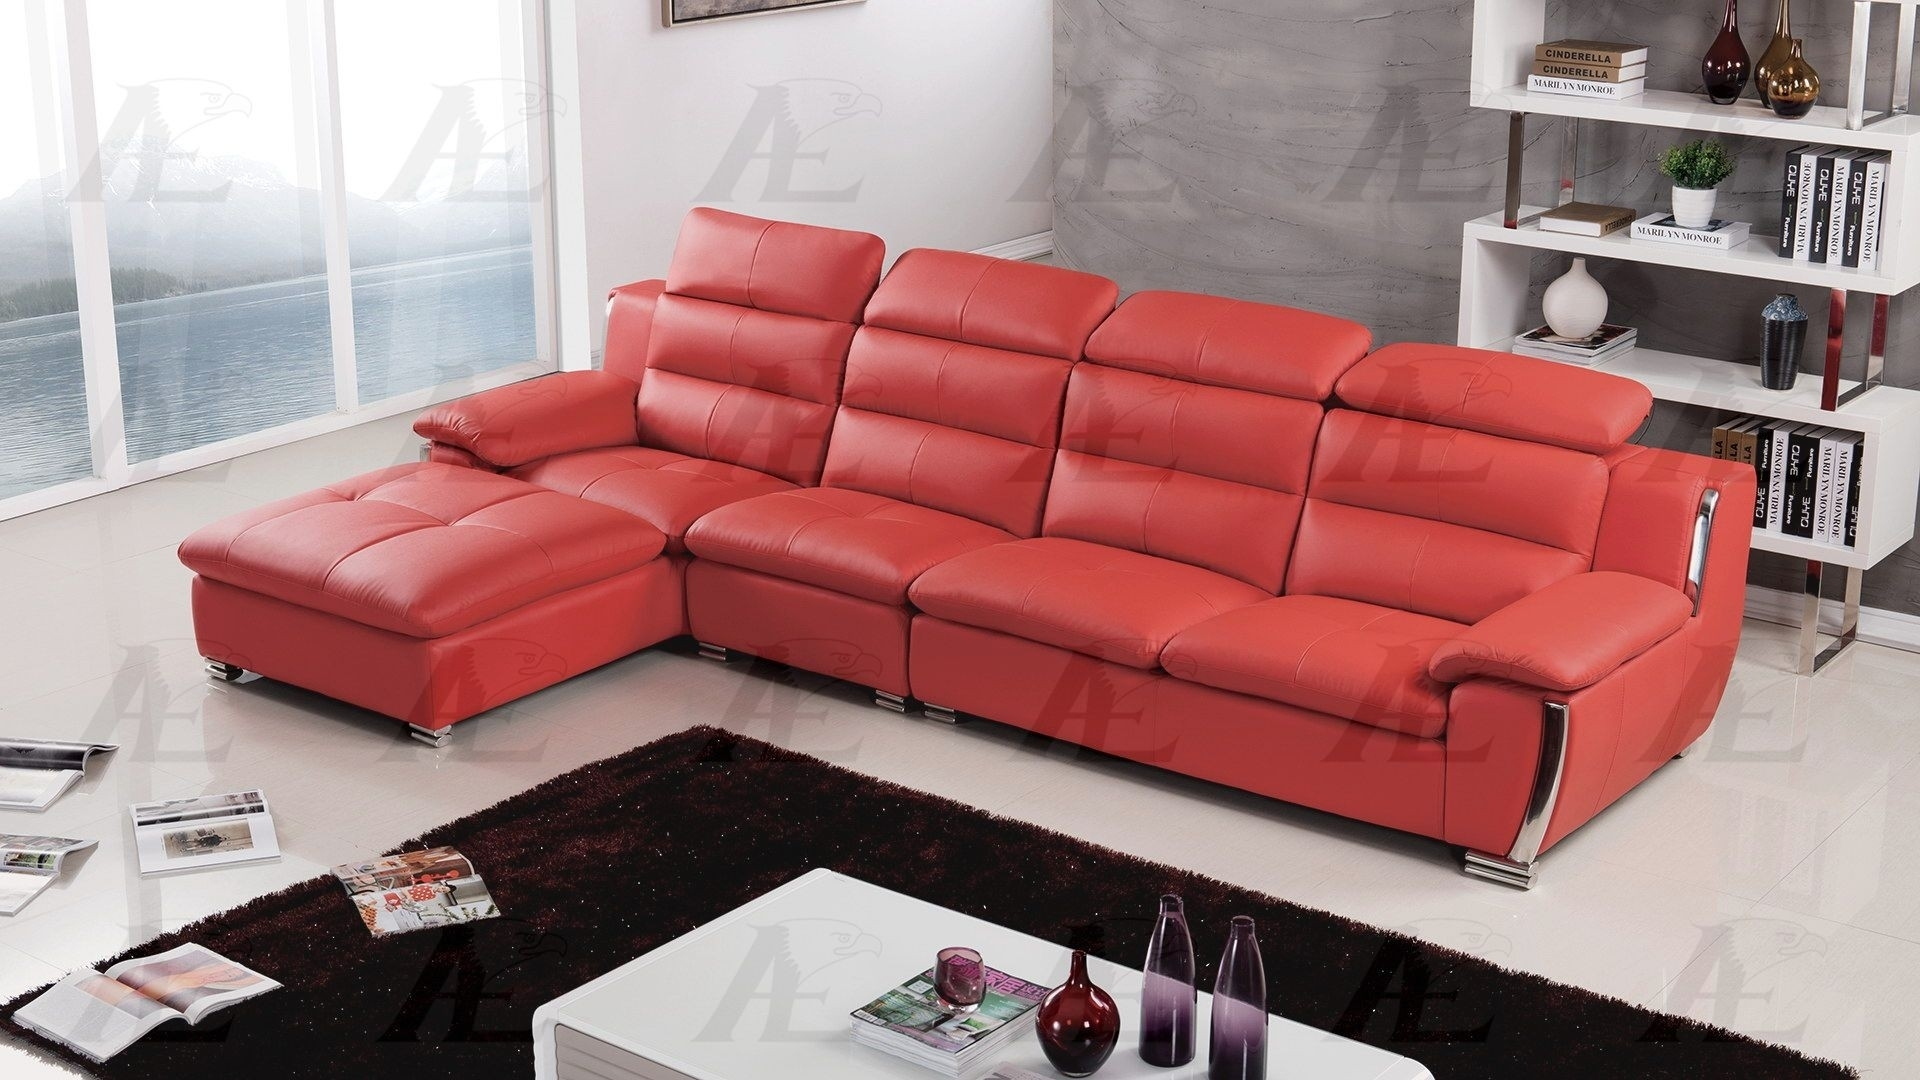 Faux Leather Sectional with regard to Red Faux Leather Sectionals (Image 3 of 15)